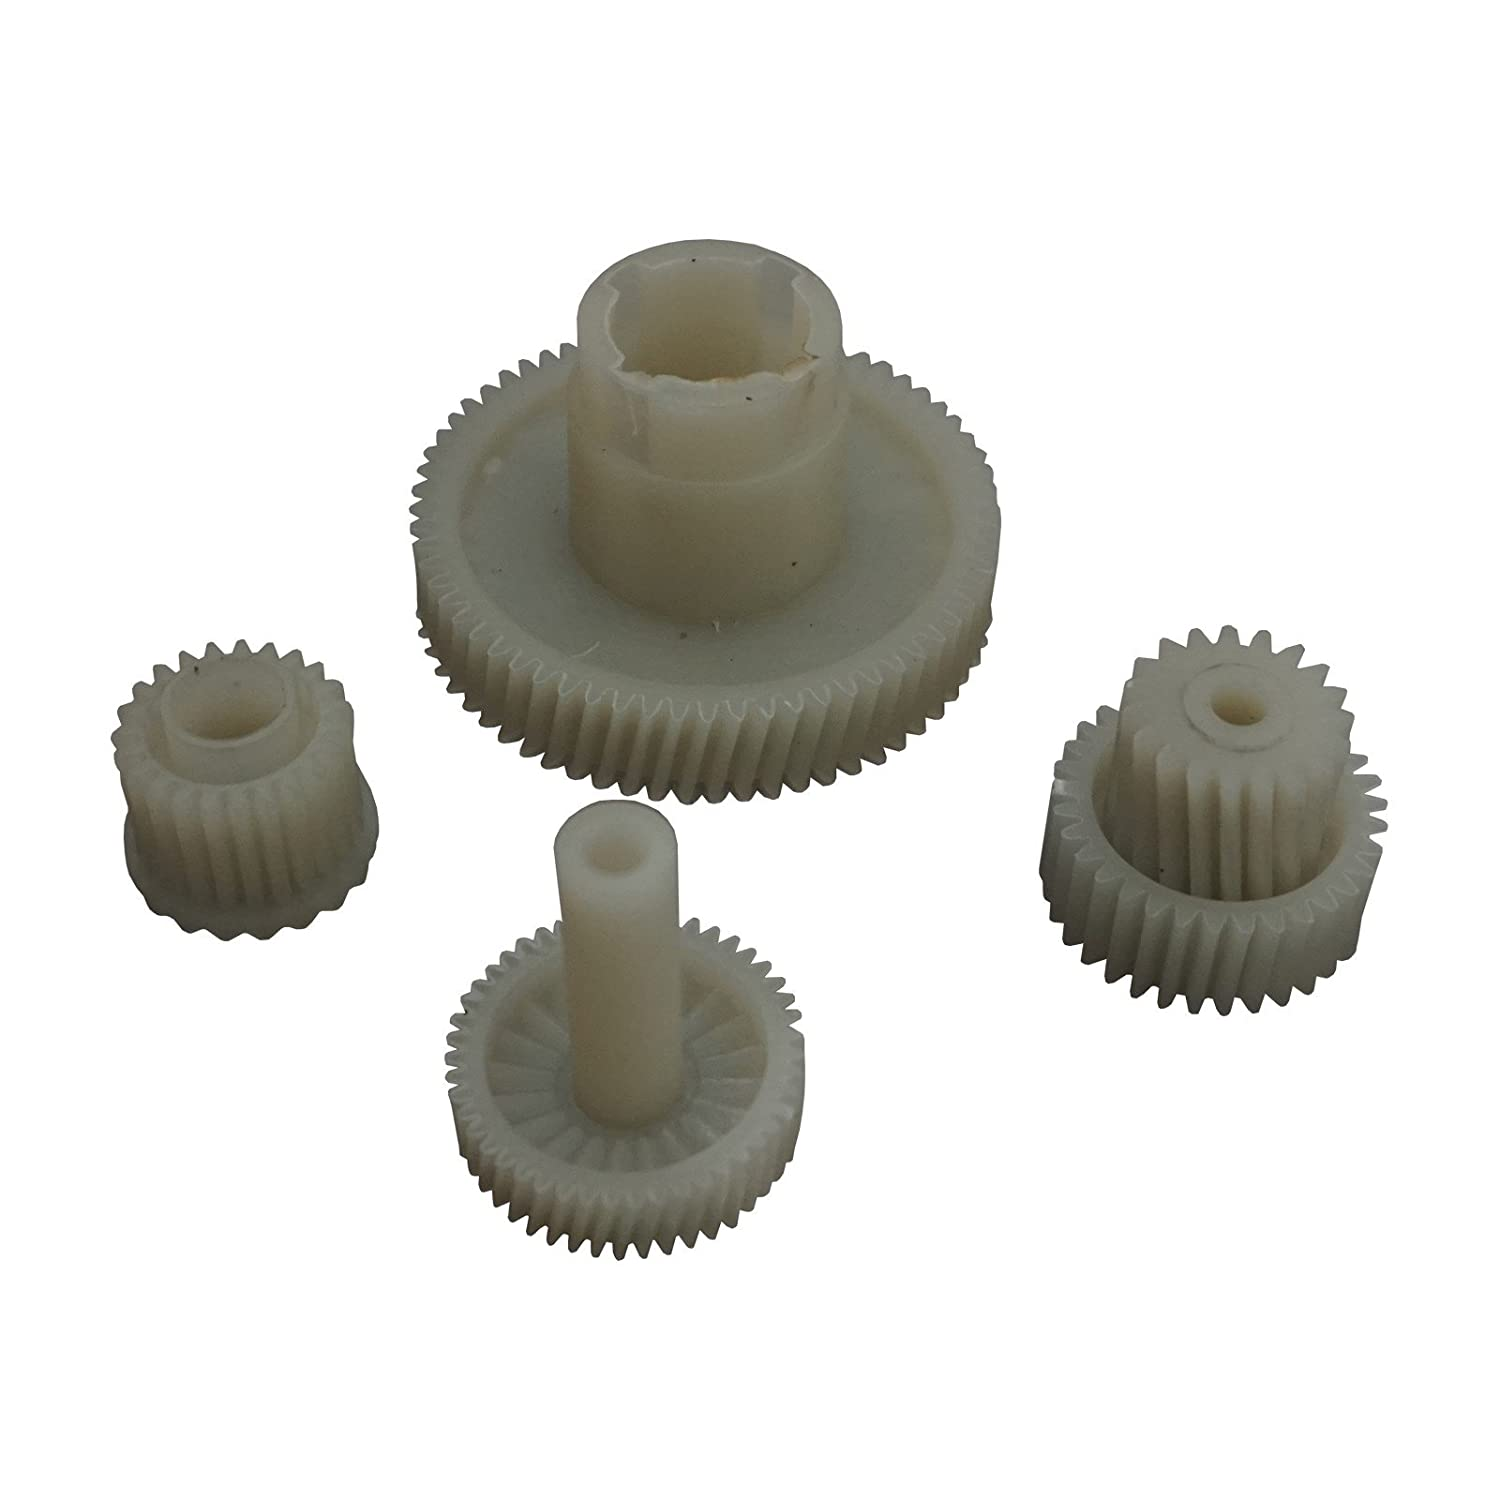 PARKING BRAKE ACTUATOR REPAIR REPLACEMENT GEARS FOR LAND ROVER RANGE ROVER SPORT